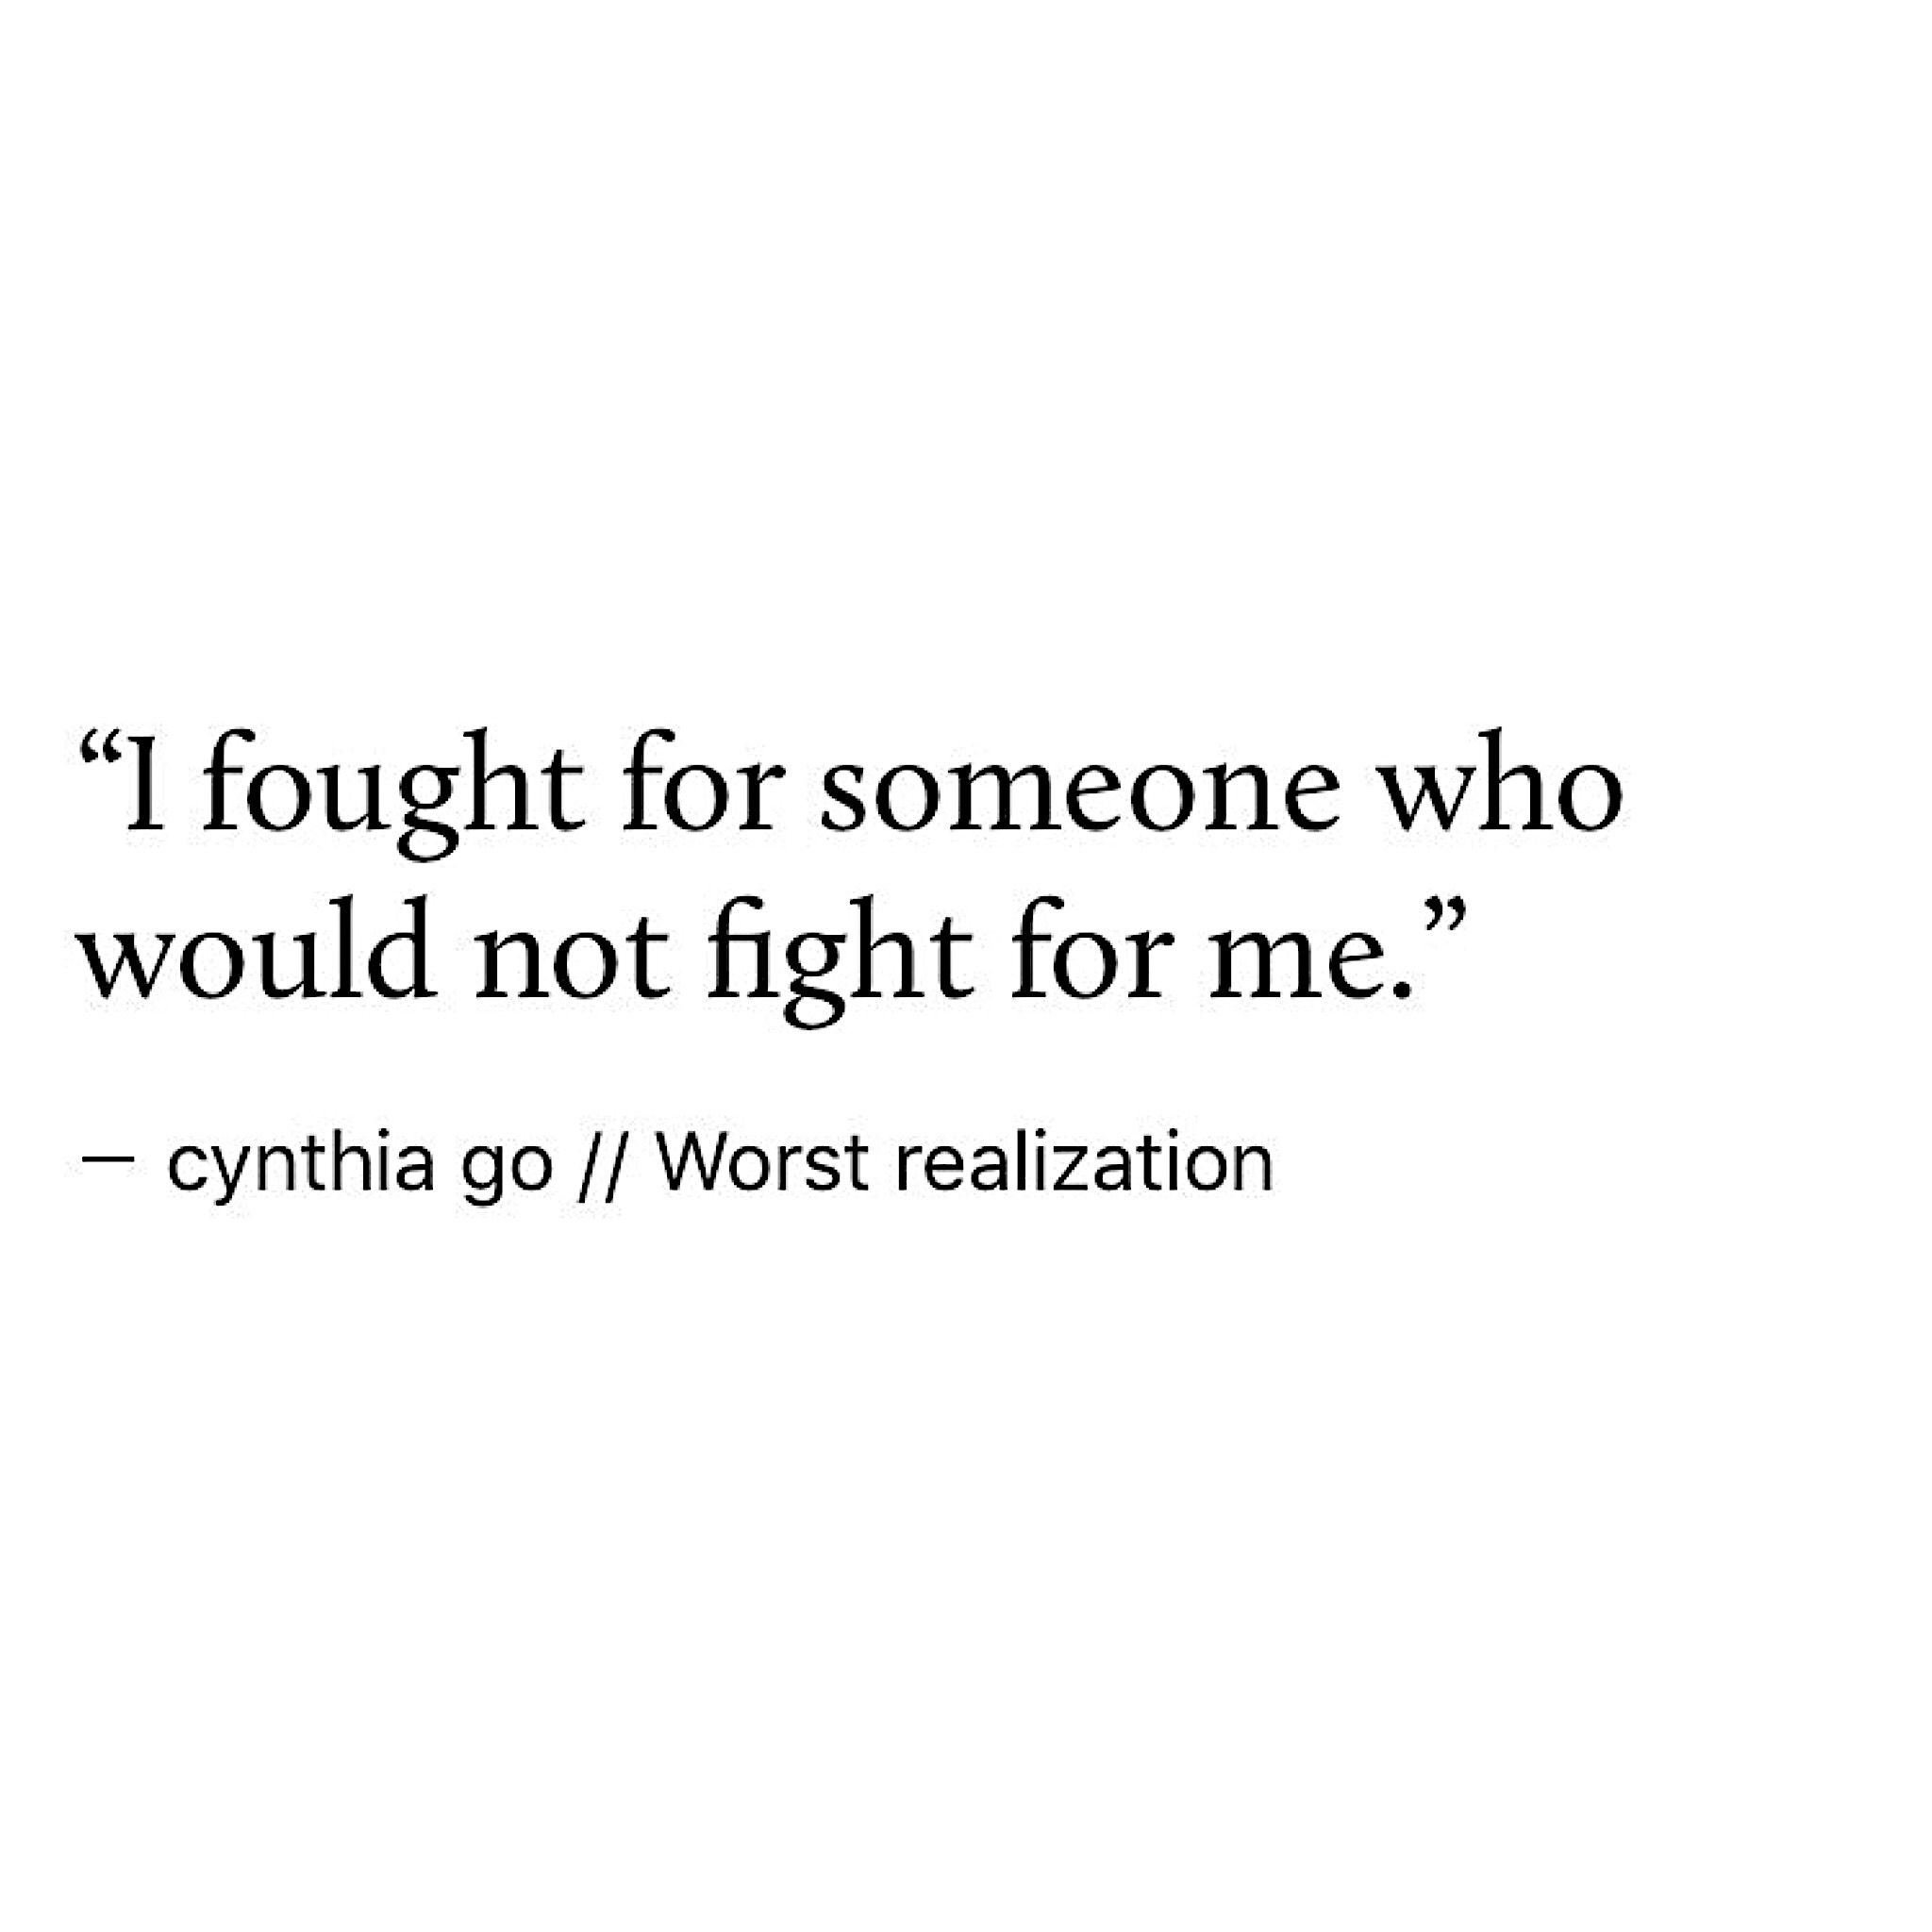 Pinterest Cynthia_go Ig Cynthiatingo Cynthia Go Love Quotes Heartbreak Writing Spilled Ink Tumblr Prose Poetry Breakups Sad Quotes Reality